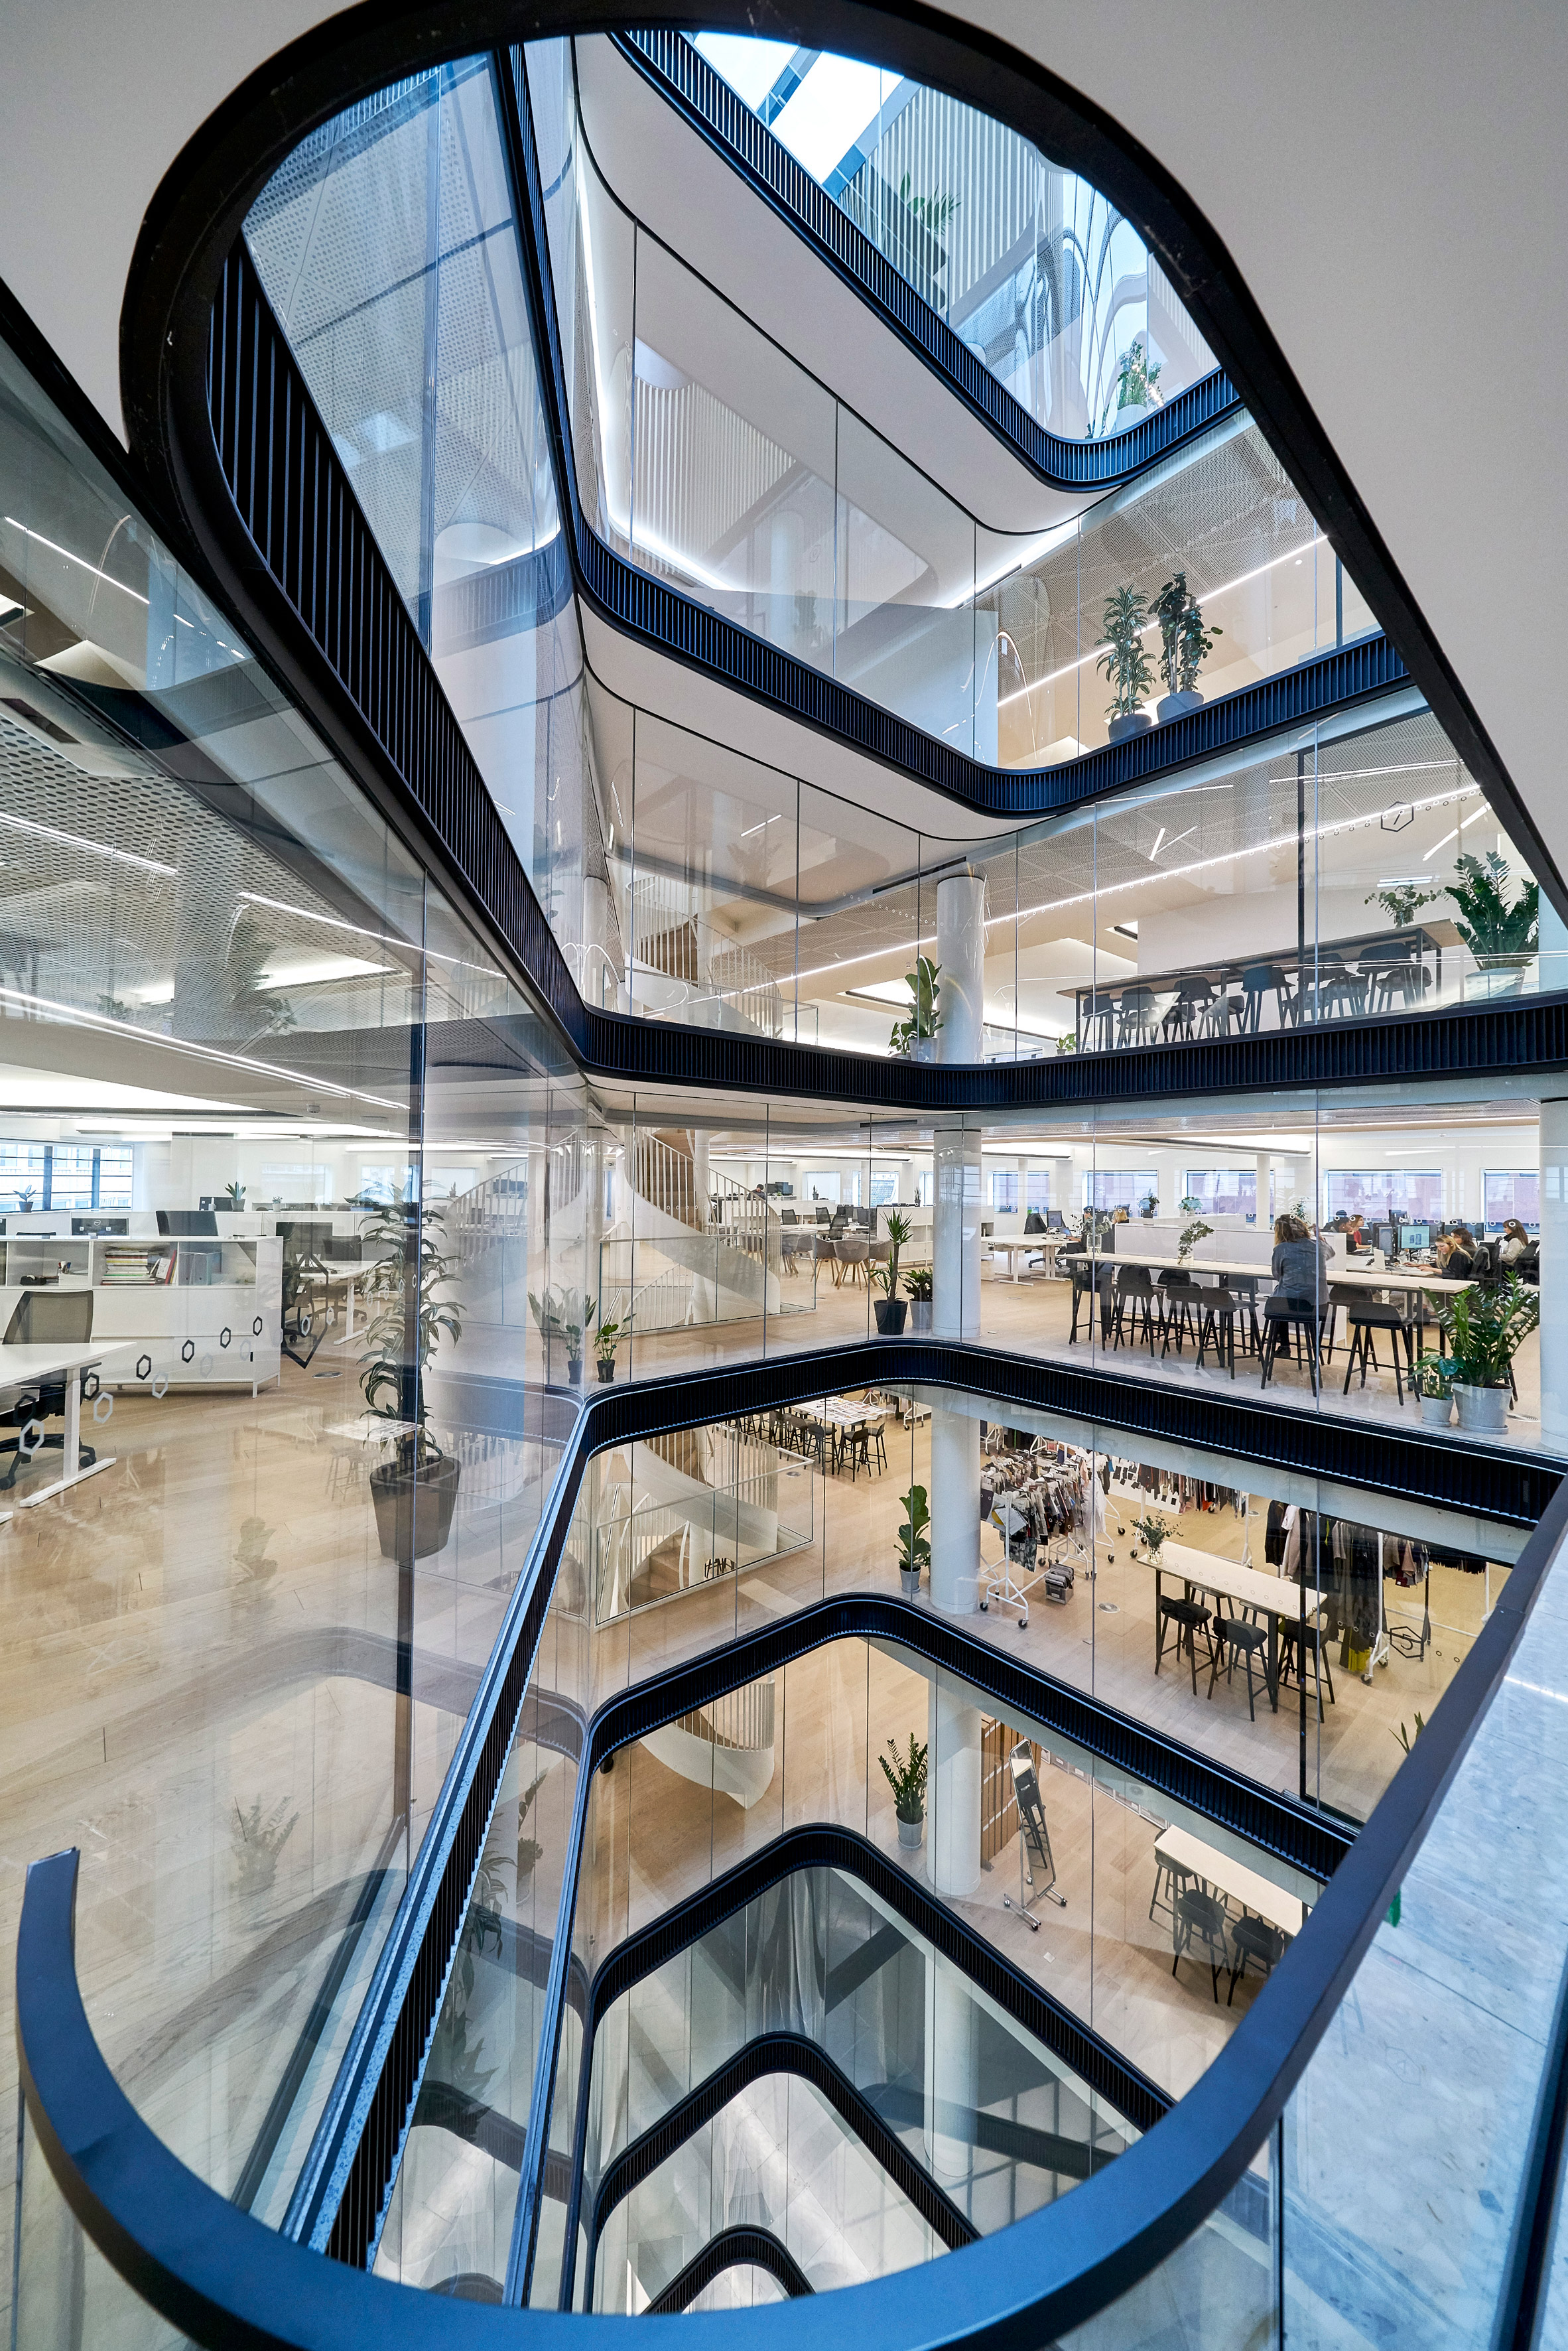 Orms renovates art deco office for fashion brand COS